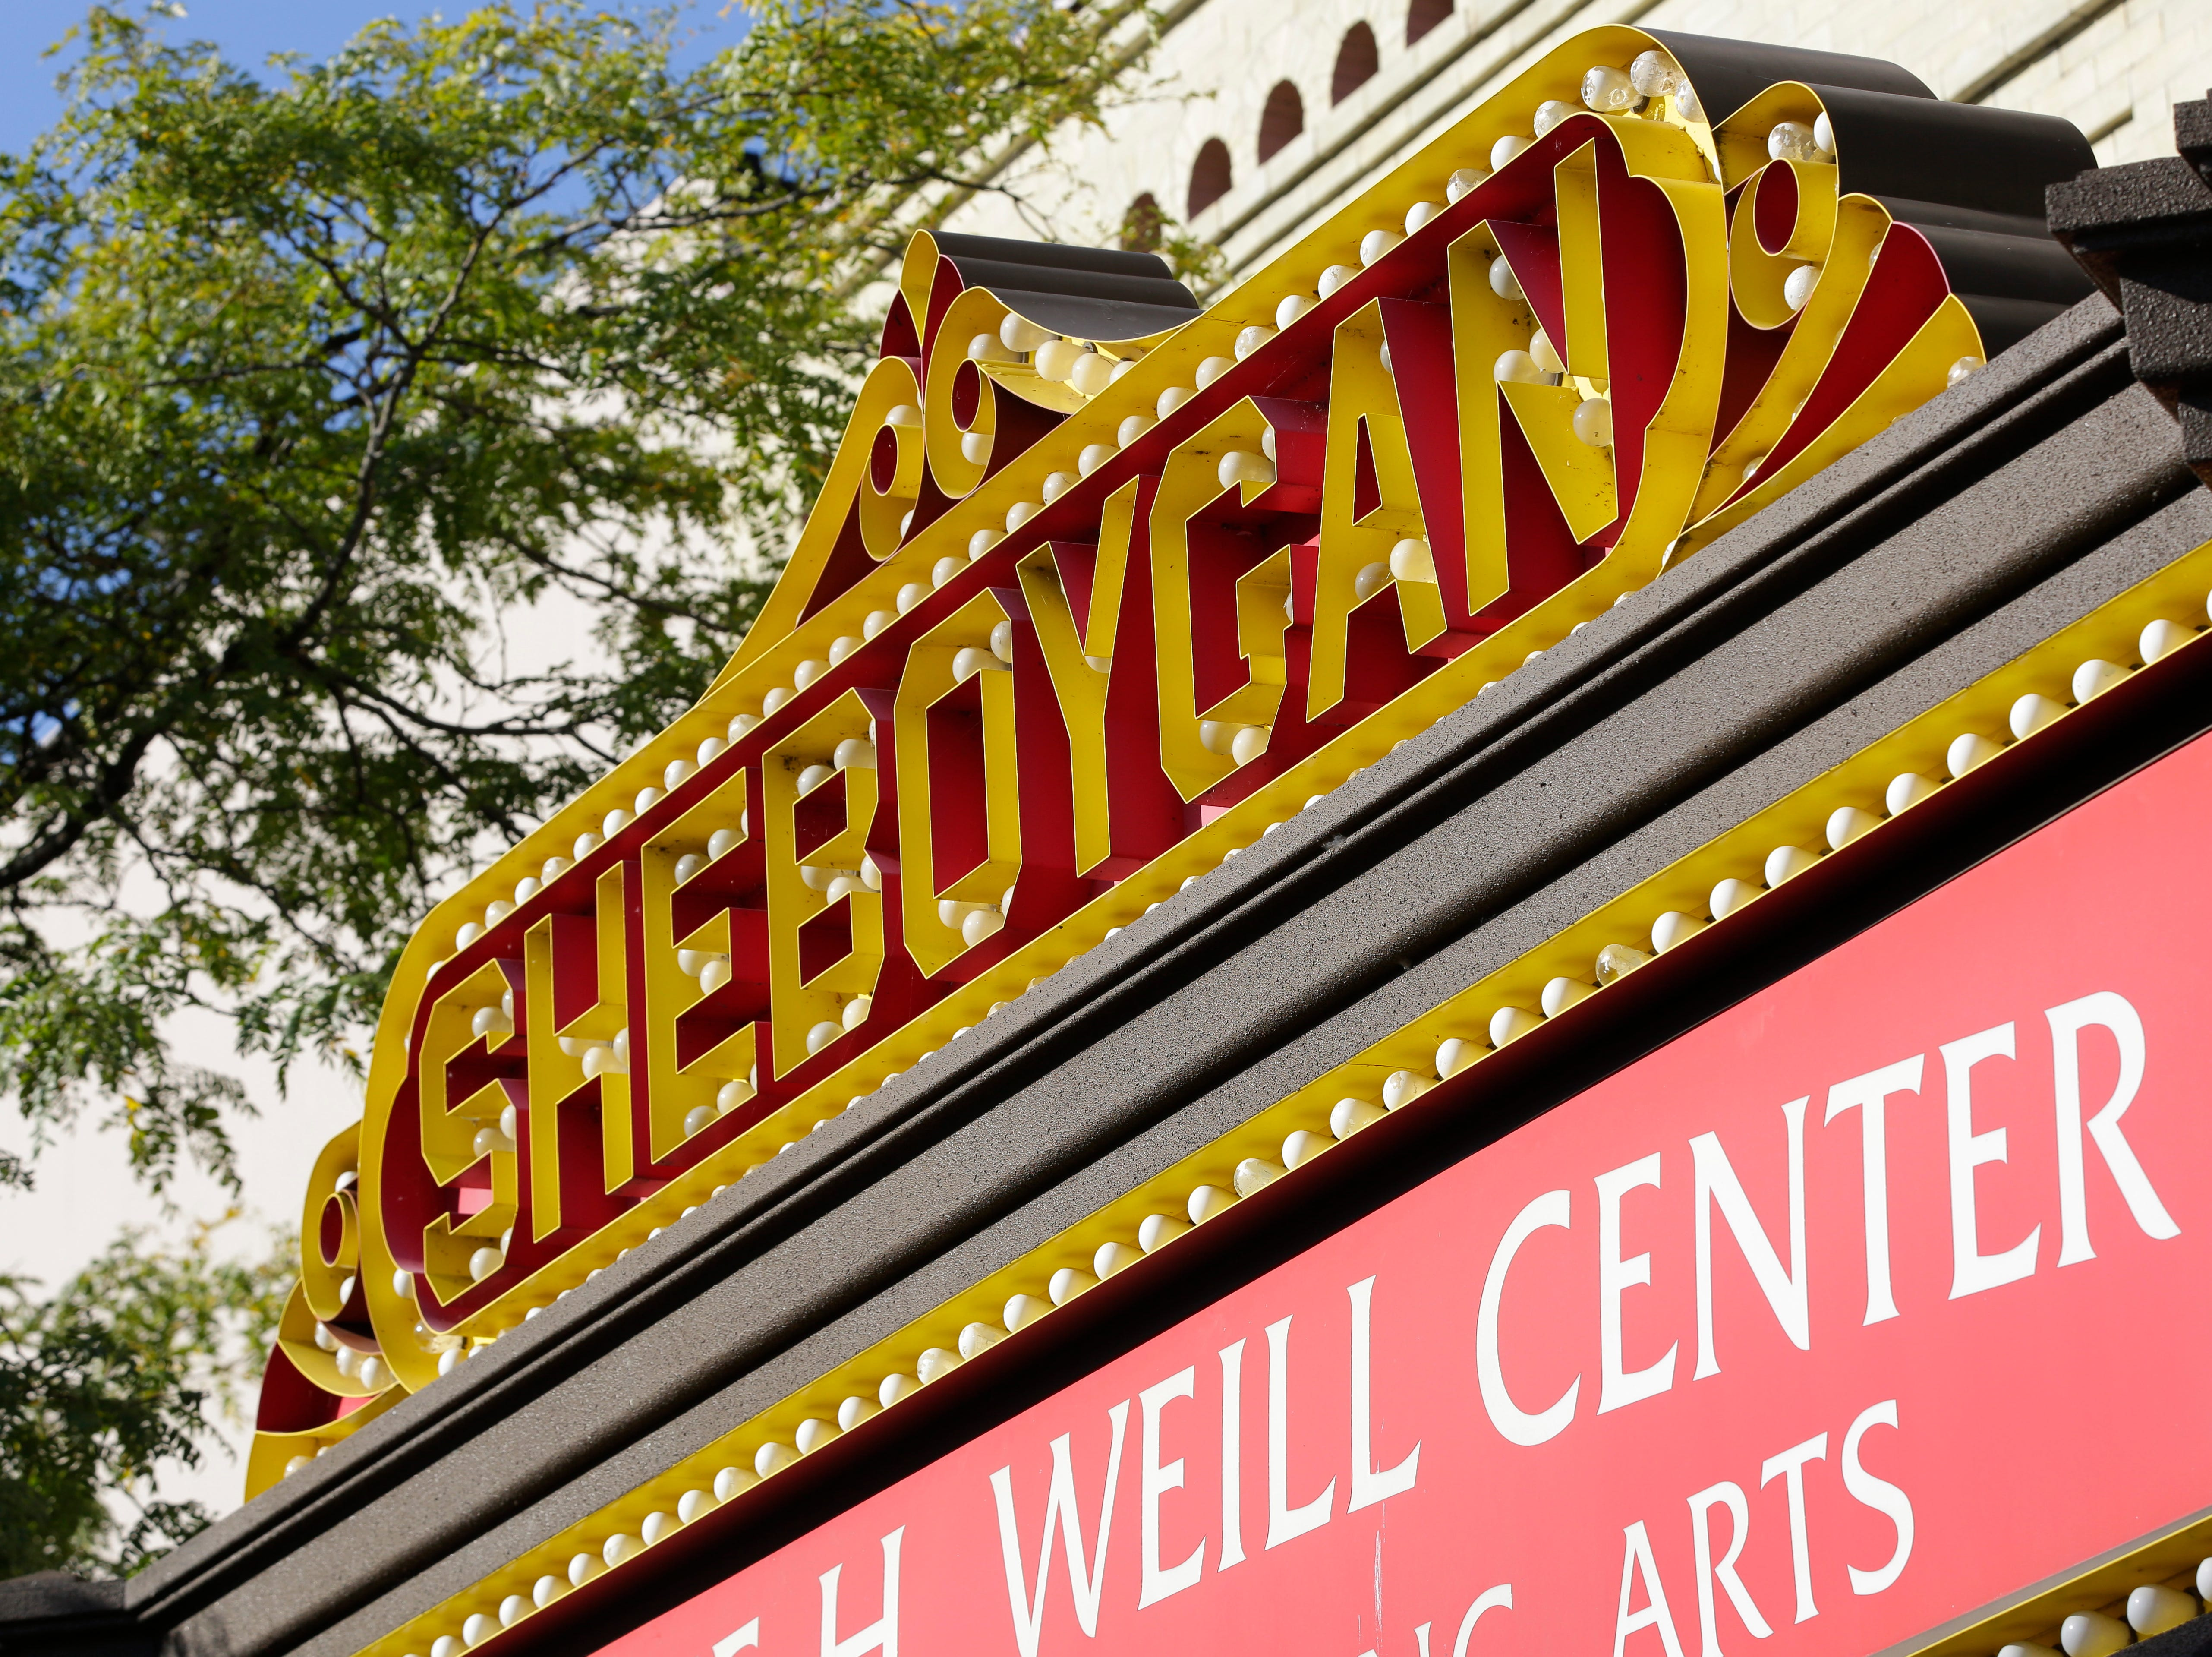 Every single lamp on the marquee of the  Stefanie H. Weill Center for the Performing Arts Center will be converted from incandescent to LED bulbs, Sunday, September 23, 2018, in Sheboygan, Wis. The Center hopes to slash its energy costs with the conversion.